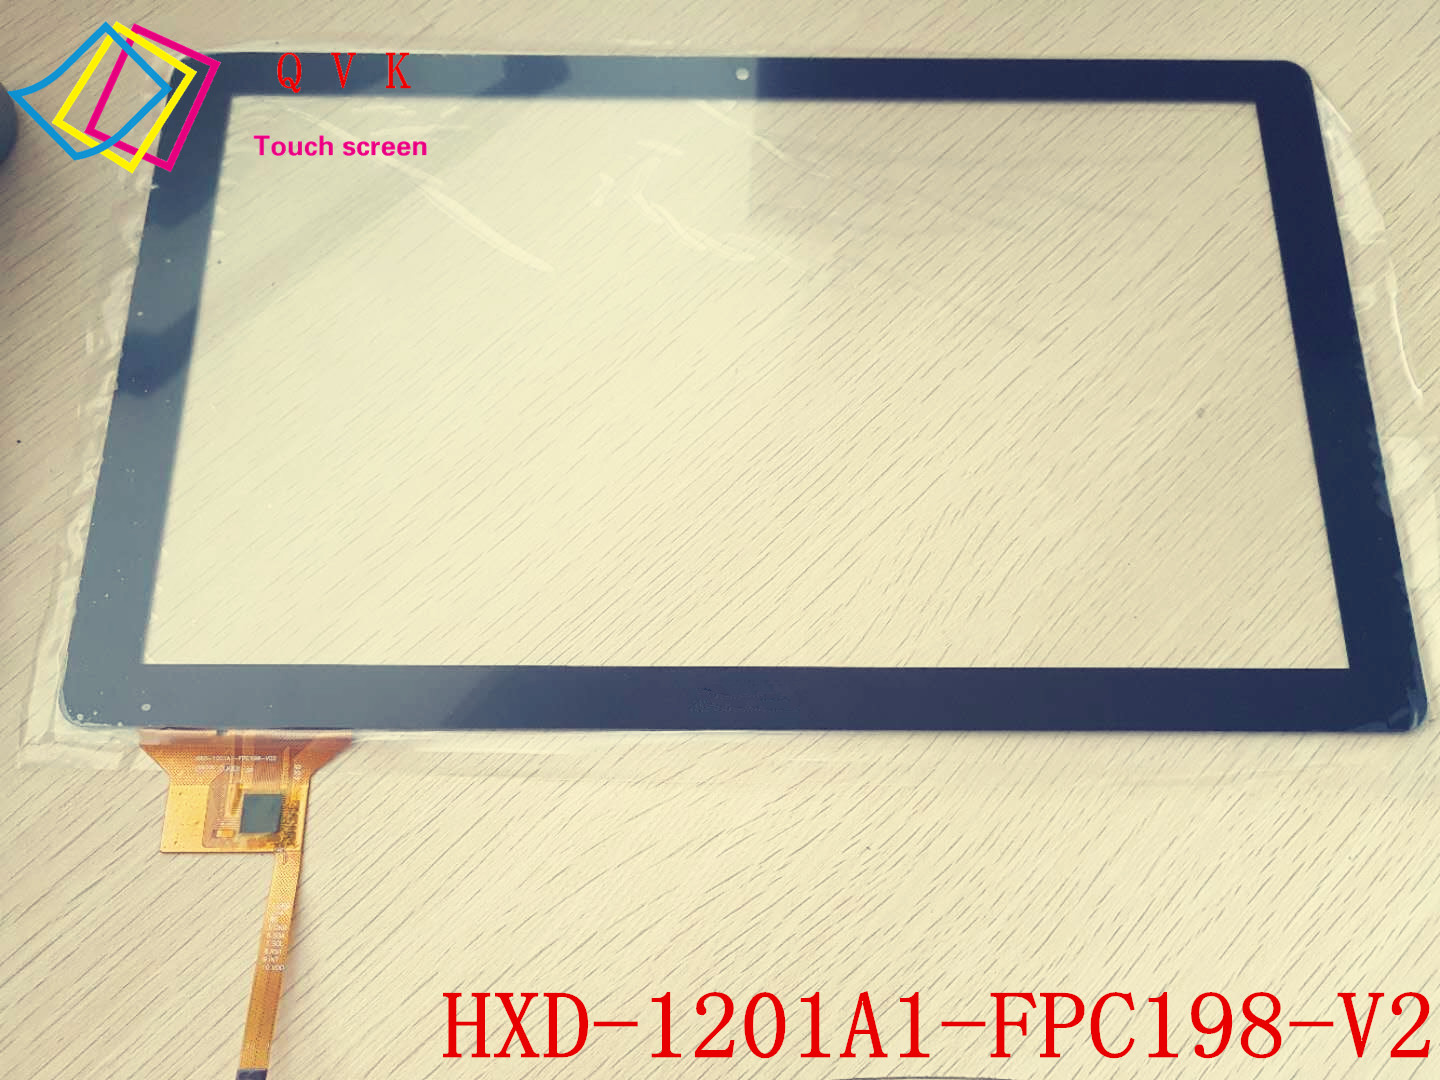 Black 12.1 Inch touch screen For HXD-1201A1-FPC198-V2 Capacitive touch screen Tablet PC replacement repair<br>